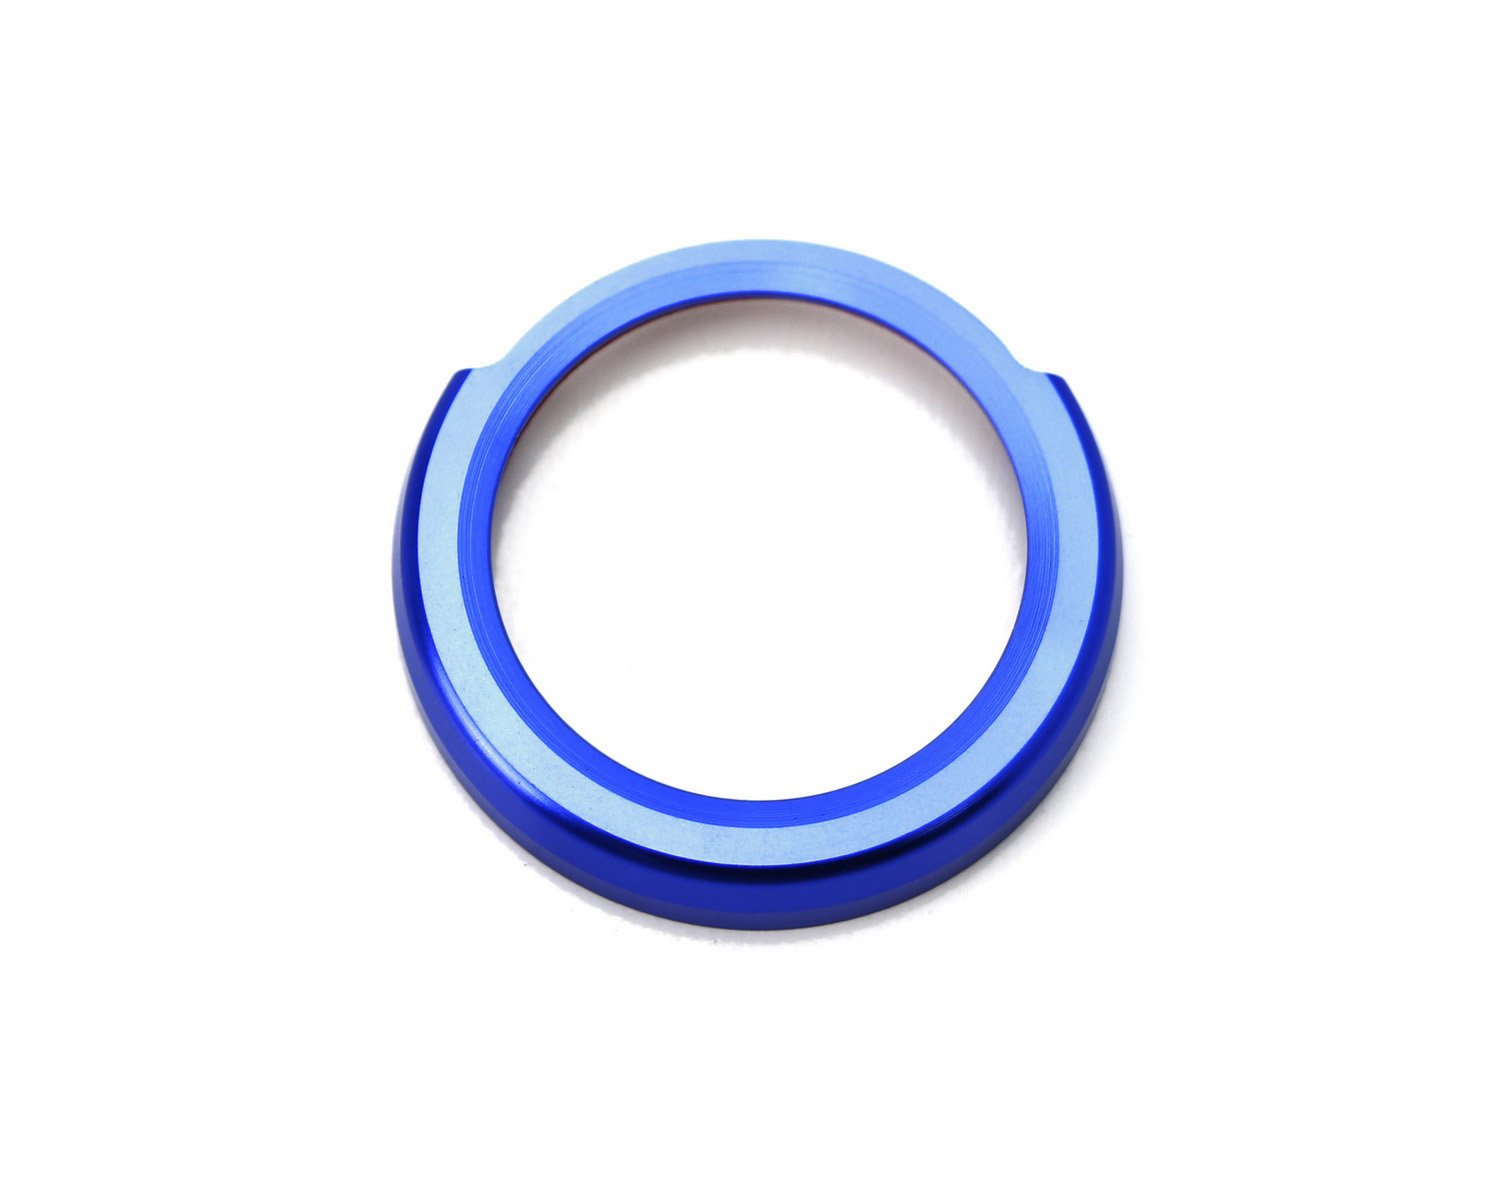 iJDMTOY Auto Accessories Peel-N-Apply Self-Adhesive Ring//Cover iJDMTOY Anodized Blue Aluminum Keyless Engine Push Start Button Decoration Ring Trim For BMW 2 3 4 Series X1 F22 F30 F32 F34 F48